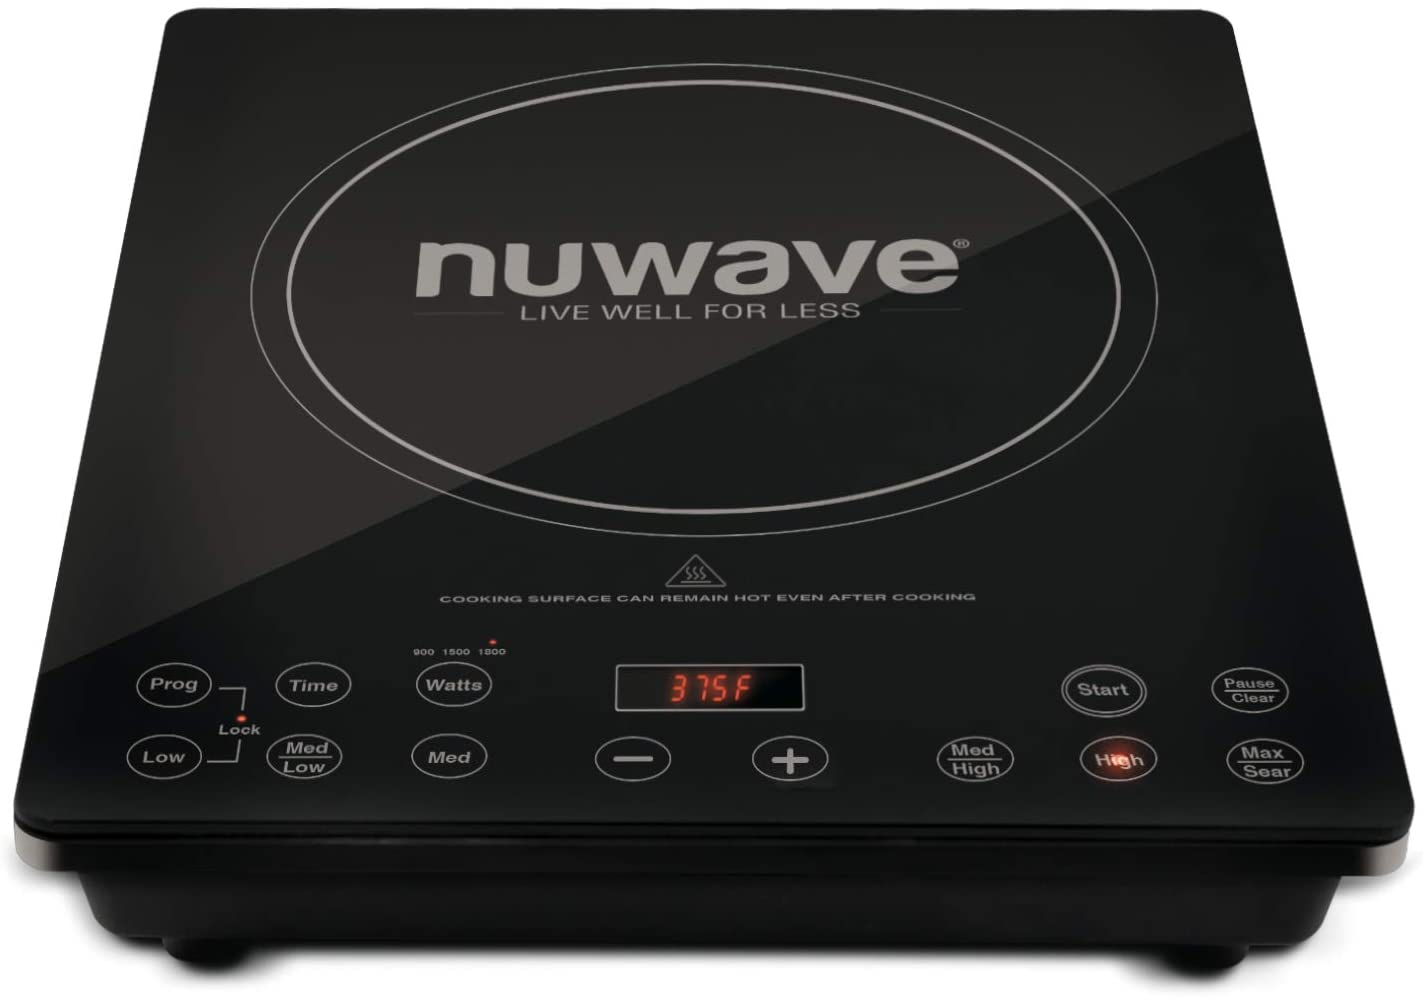 NuWave Precision Induction Cooktop Pro Chef Commercial-Grade NSF-Certified 1800-watt Induction Cooktop With Fast, Safe, Powerful Induction Cooking Technology, Automatic Shutoff, Programmable Stage Cooking Capabilities, Delay Feature & Temperature Range Between 100°F and 575°F, Adjustable In 5° Increments